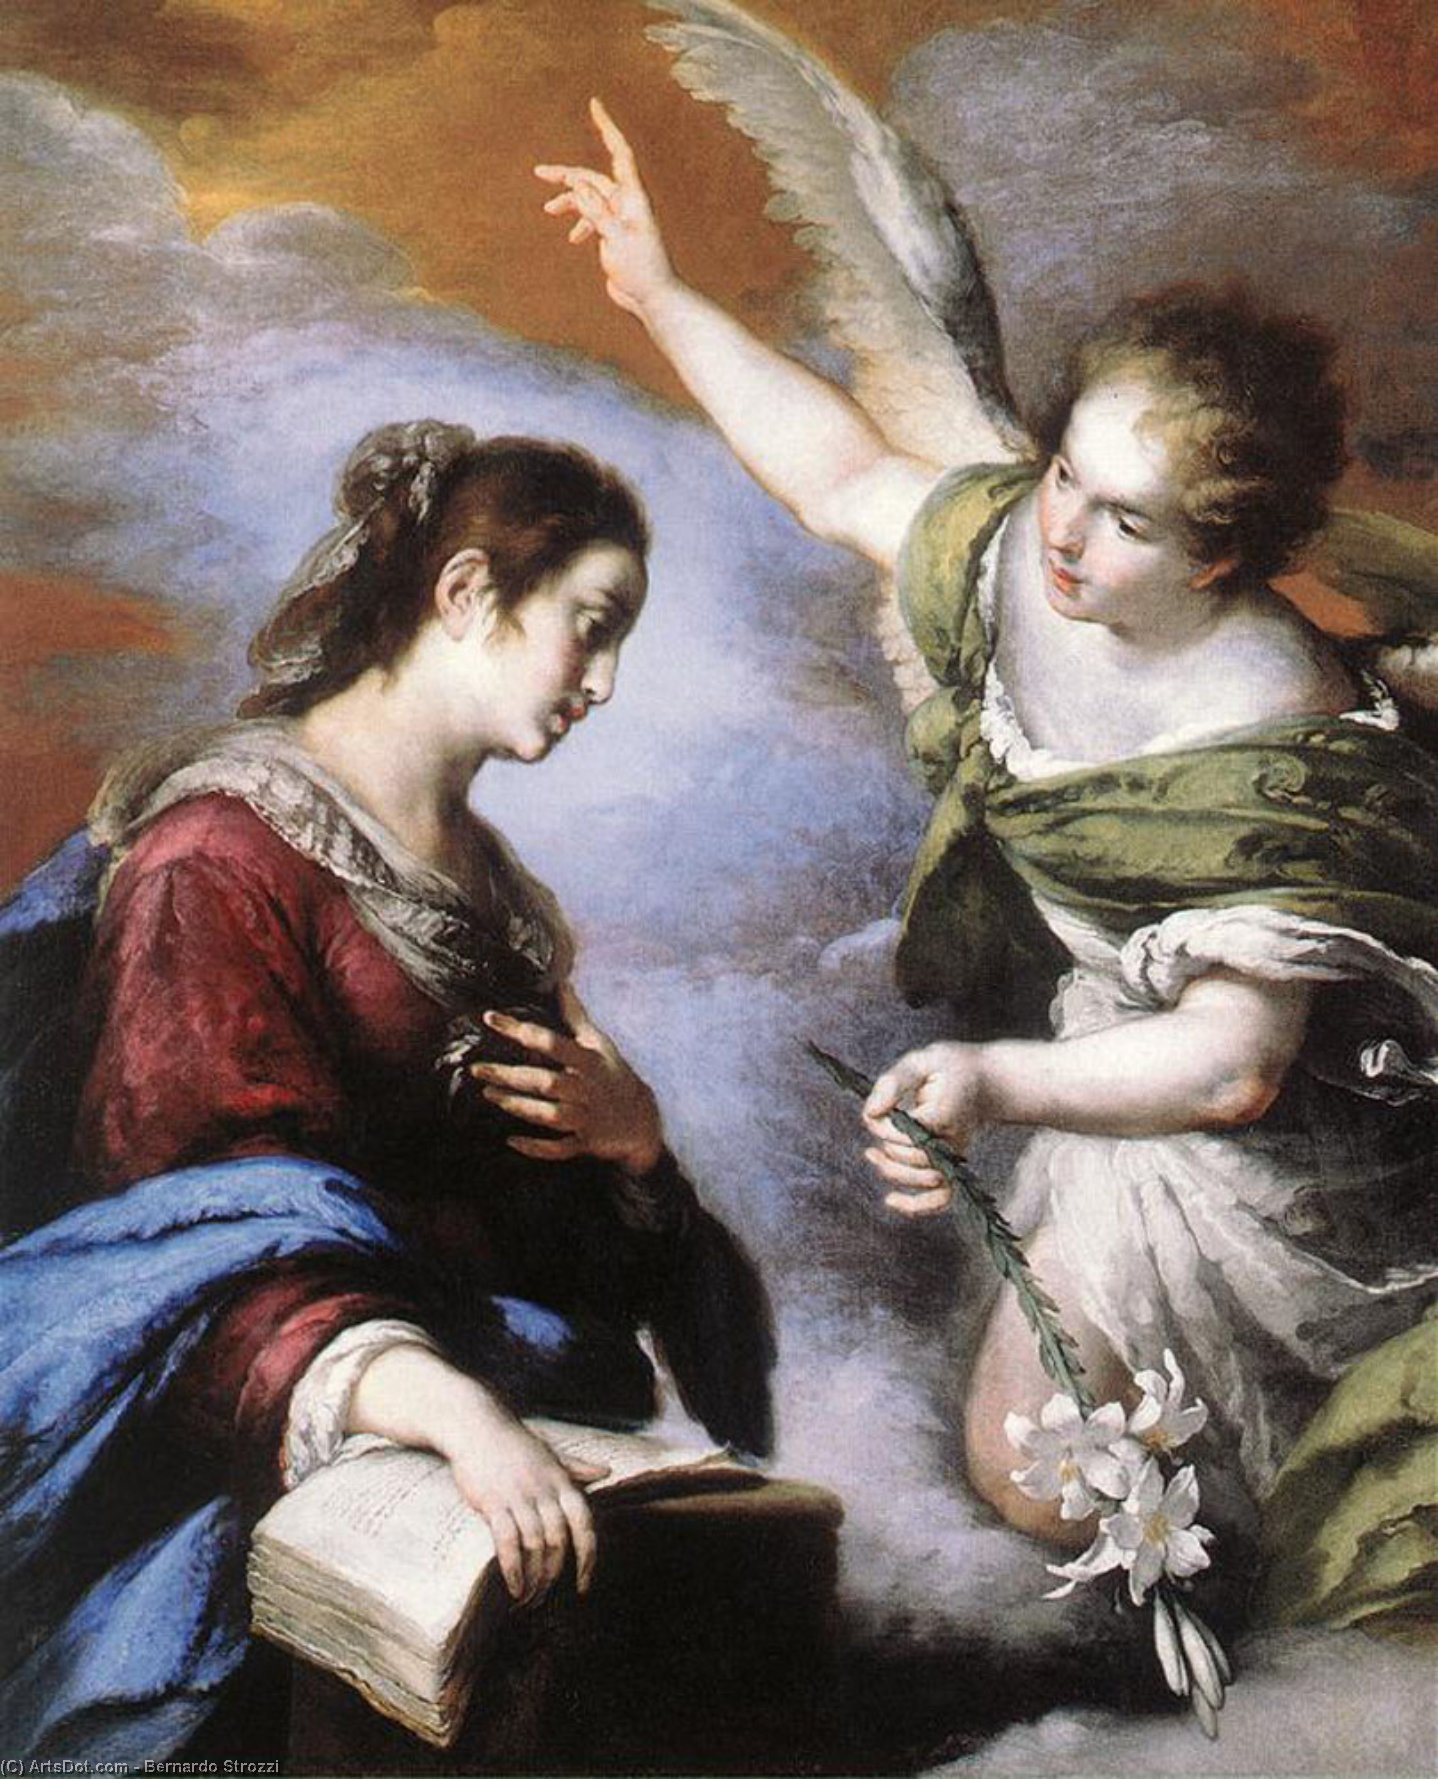 Wikioo.org - The Encyclopedia of Fine Arts - Painting, Artwork by Bernardo Strozzi - The Annunciation